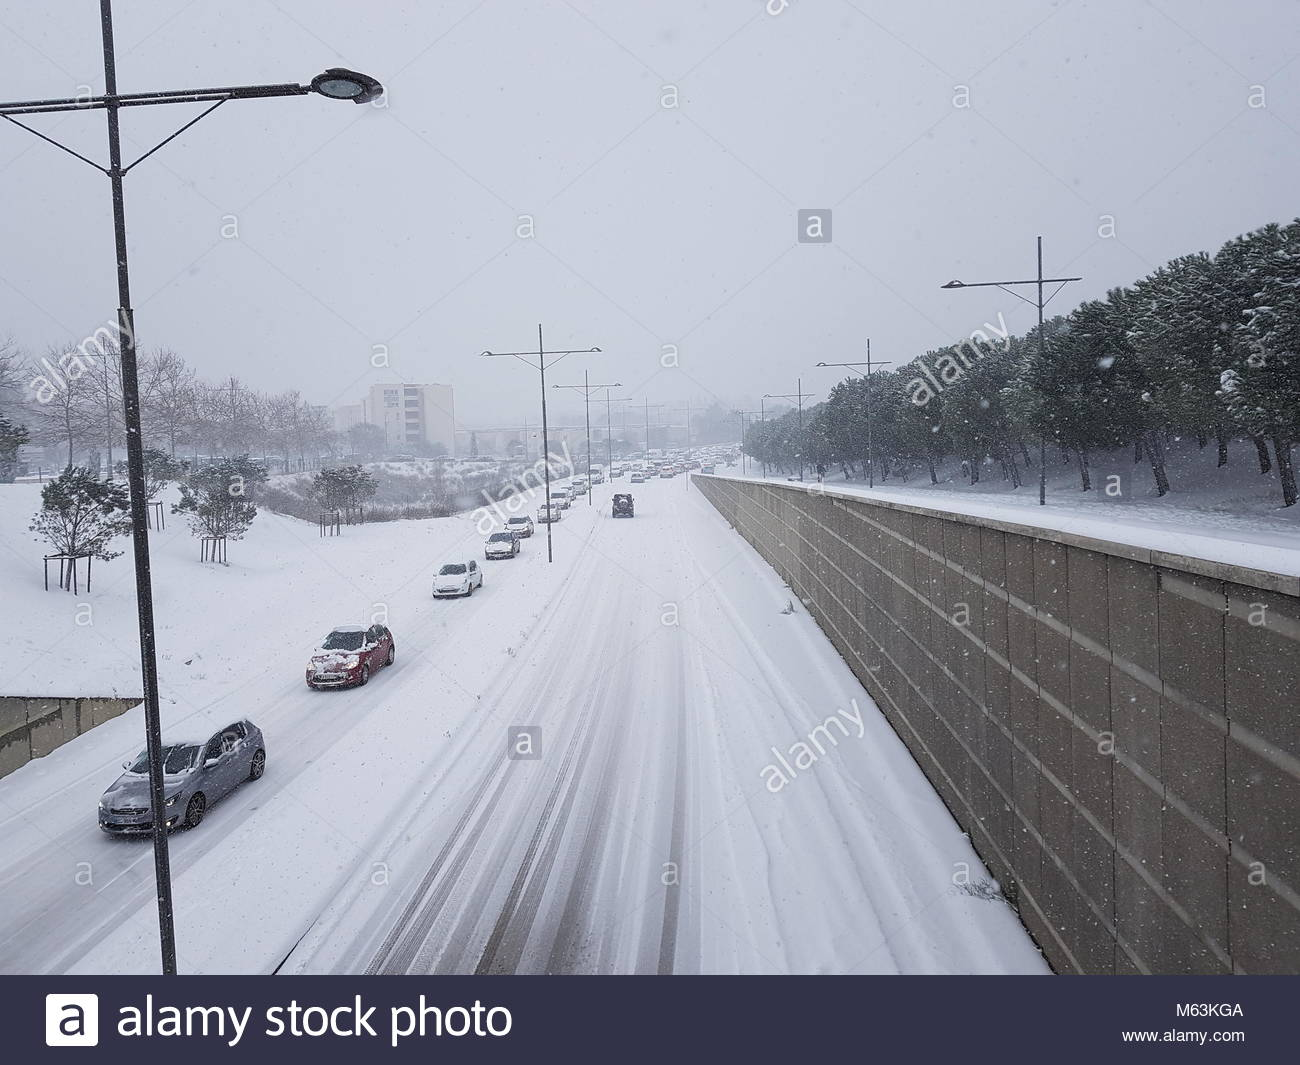 montpellier france 28th feb 2018 cars drive on a snow covered stock photo 175872826 alamy. Black Bedroom Furniture Sets. Home Design Ideas